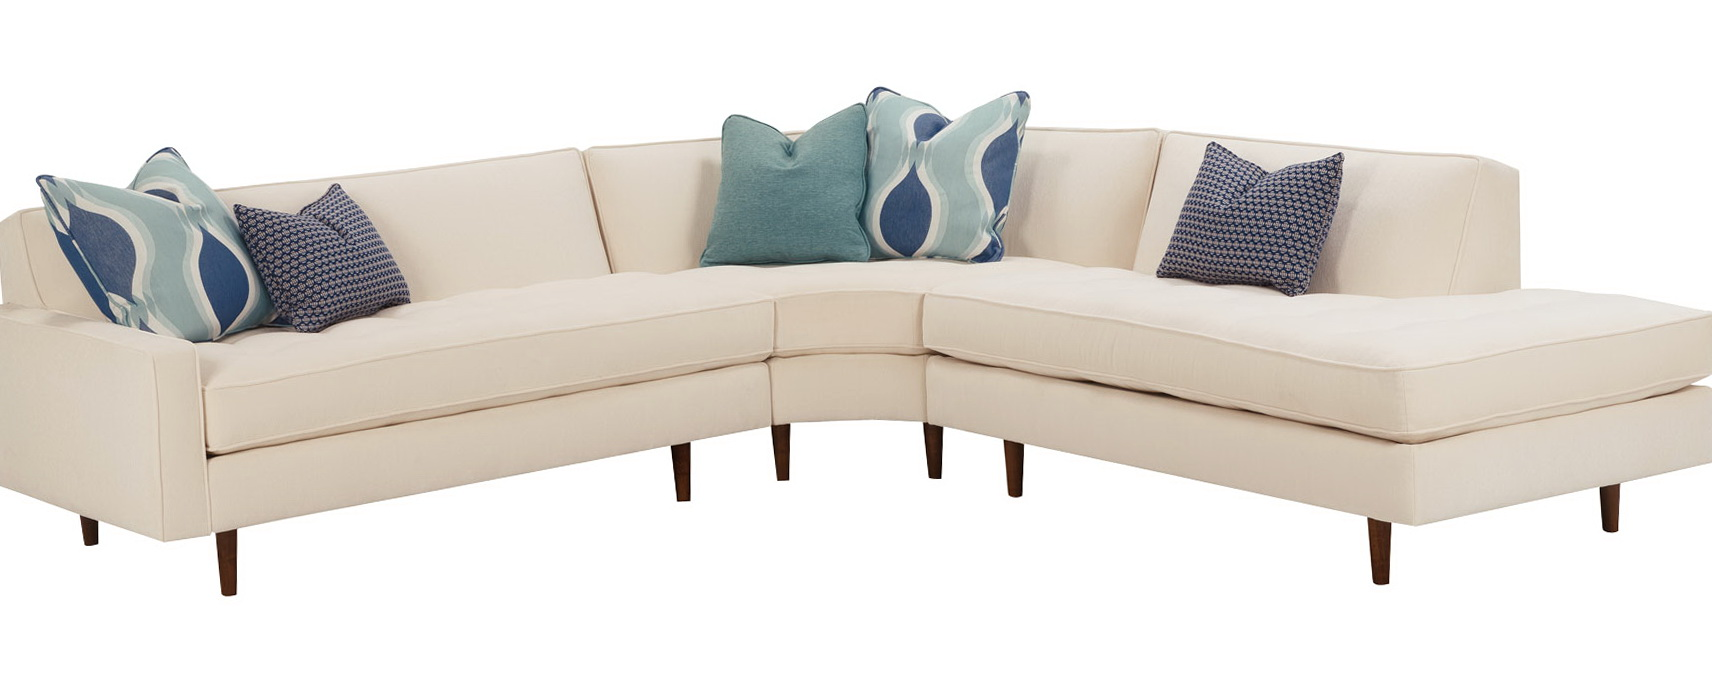 Mid Century Modern Sectional Sofas